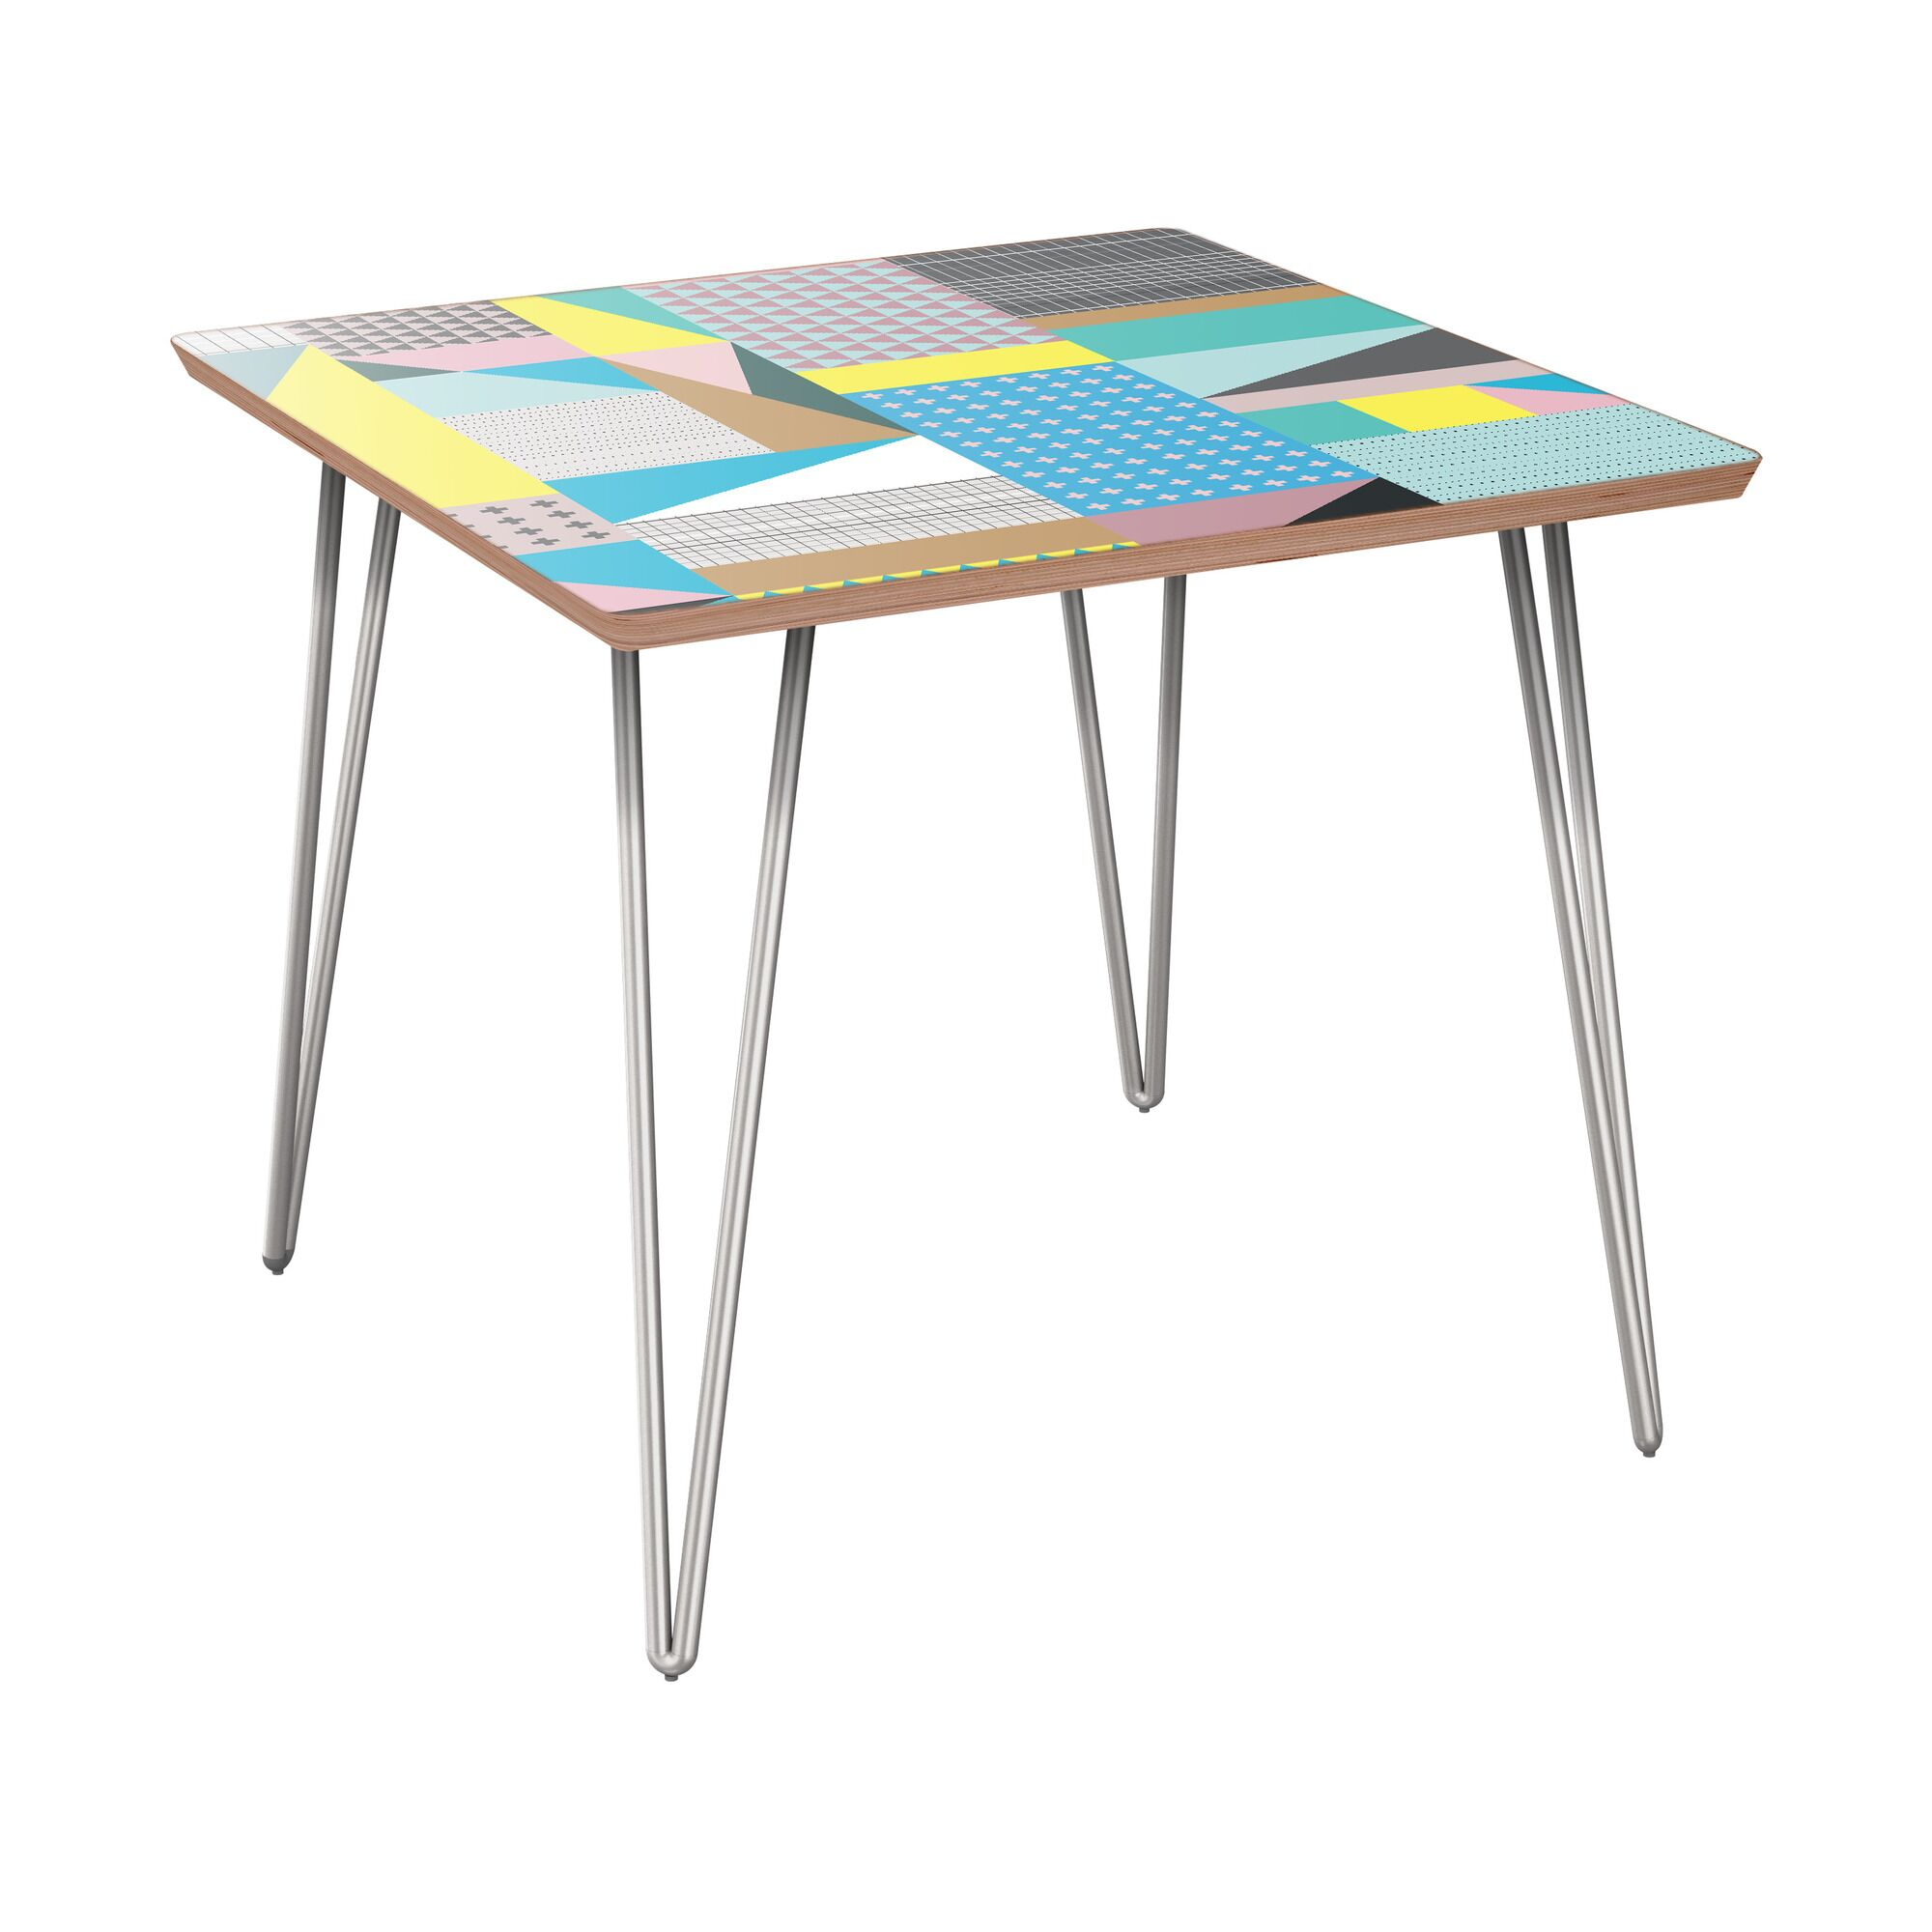 Schueler End Table Table Base Color: Chrome, Table Top Color: Walnut